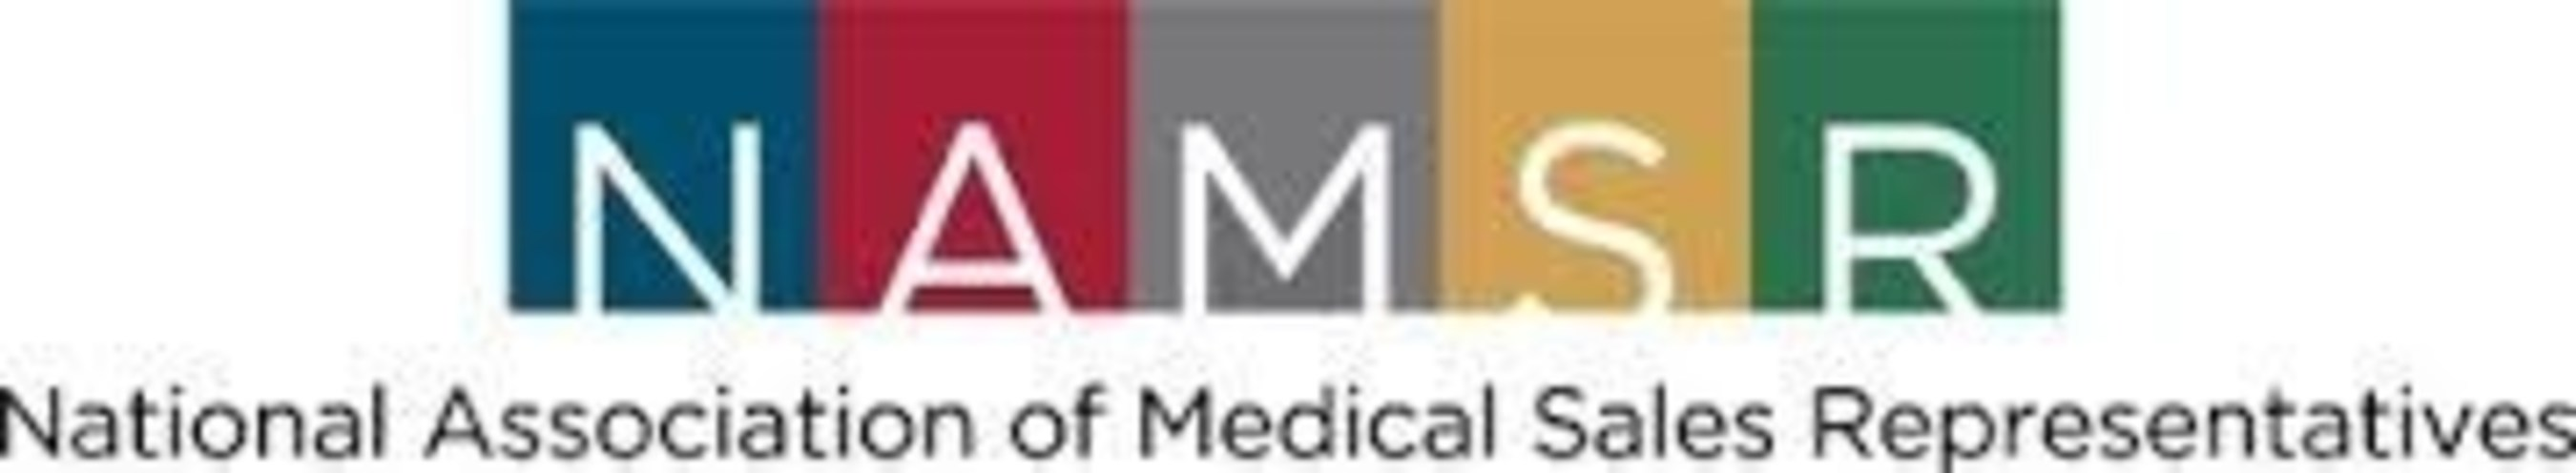 NAMSR Investigates Wearable Skin Device to Monitor Cardiovascular Health - RMSR Certification Adds It To Training